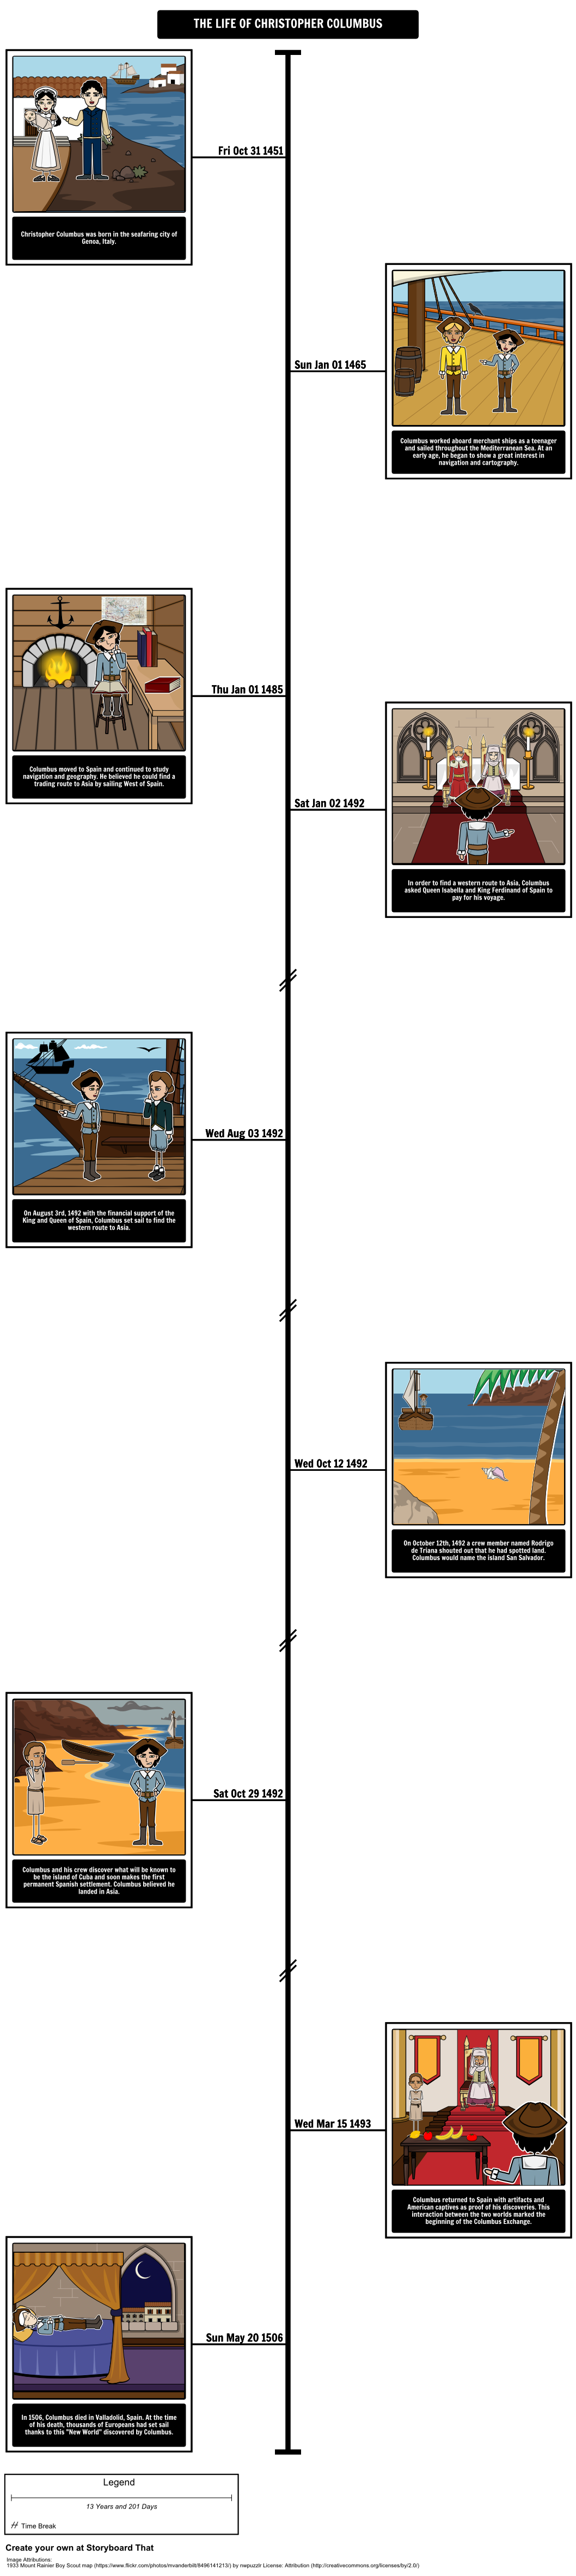 For This Activity Students Will Create A Timeline That